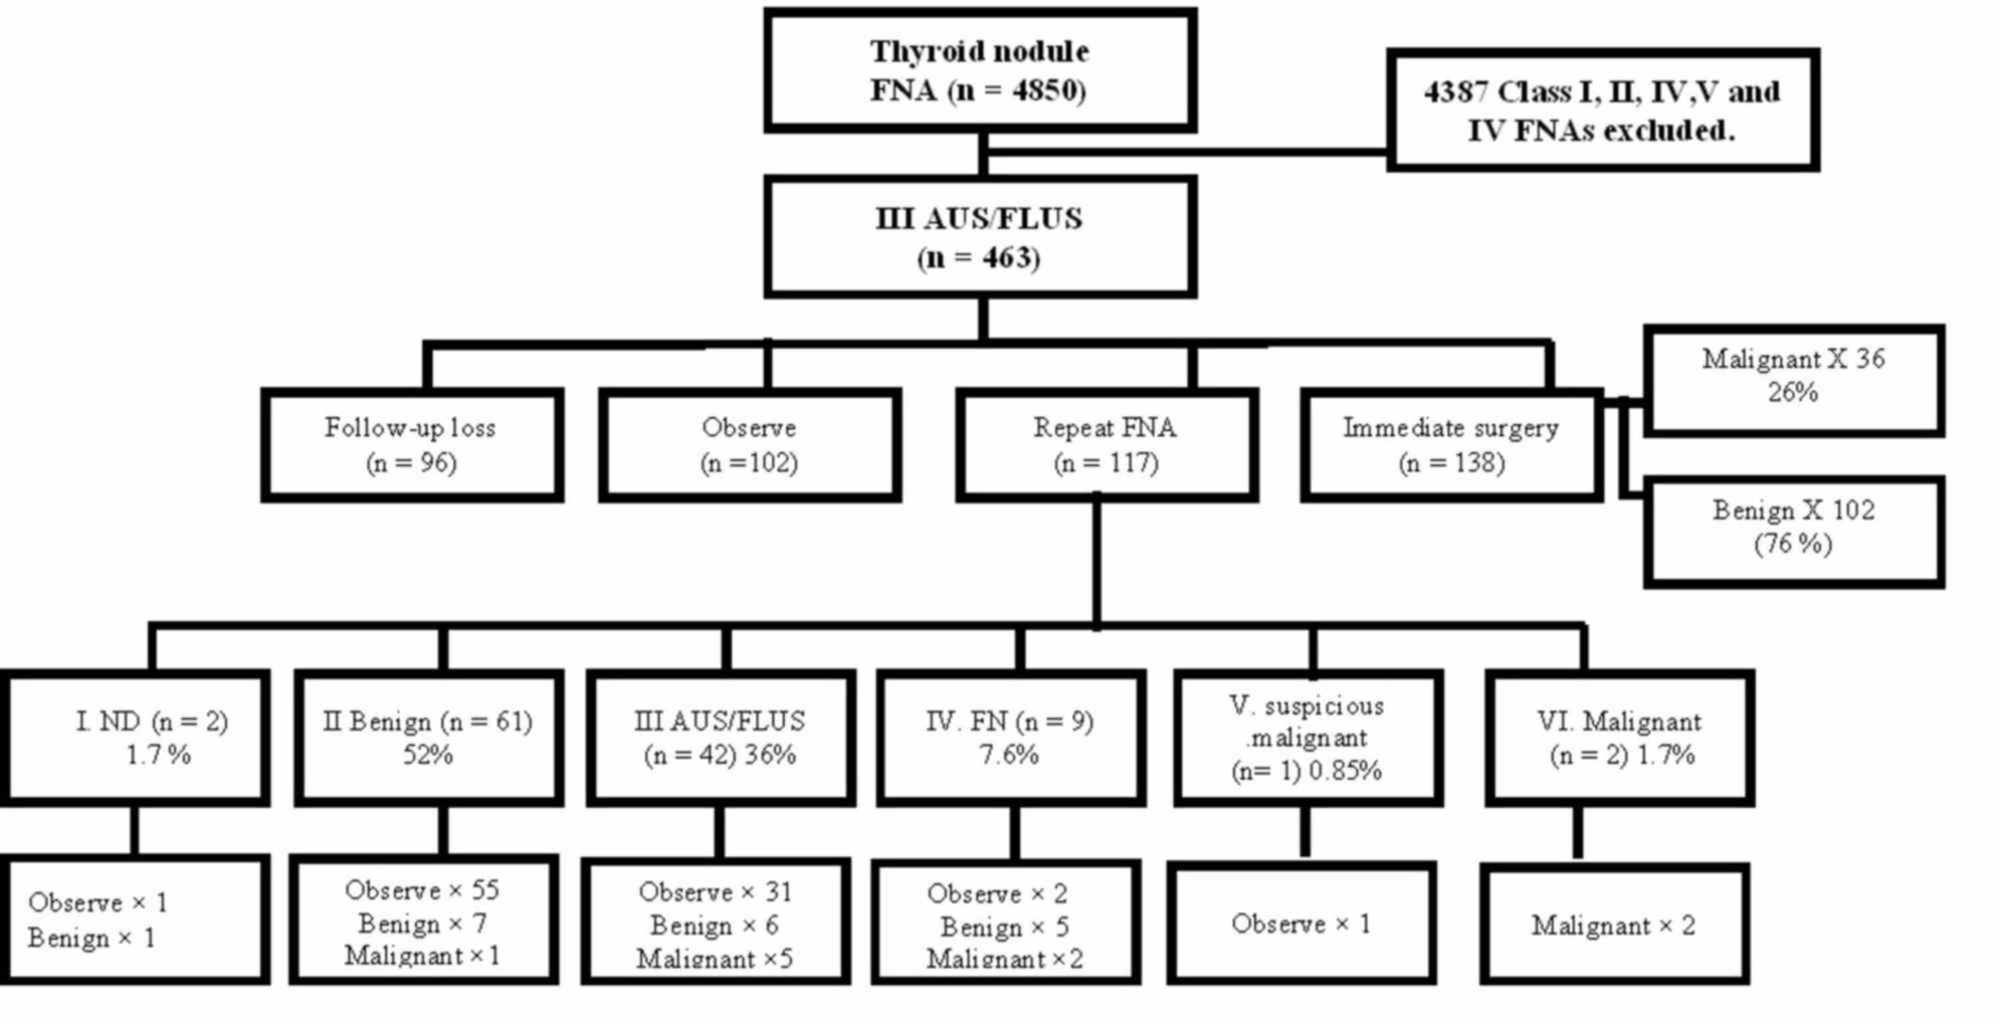 Cureus Risk Stratification Of Thyroid Nodules With Bethesda Iii